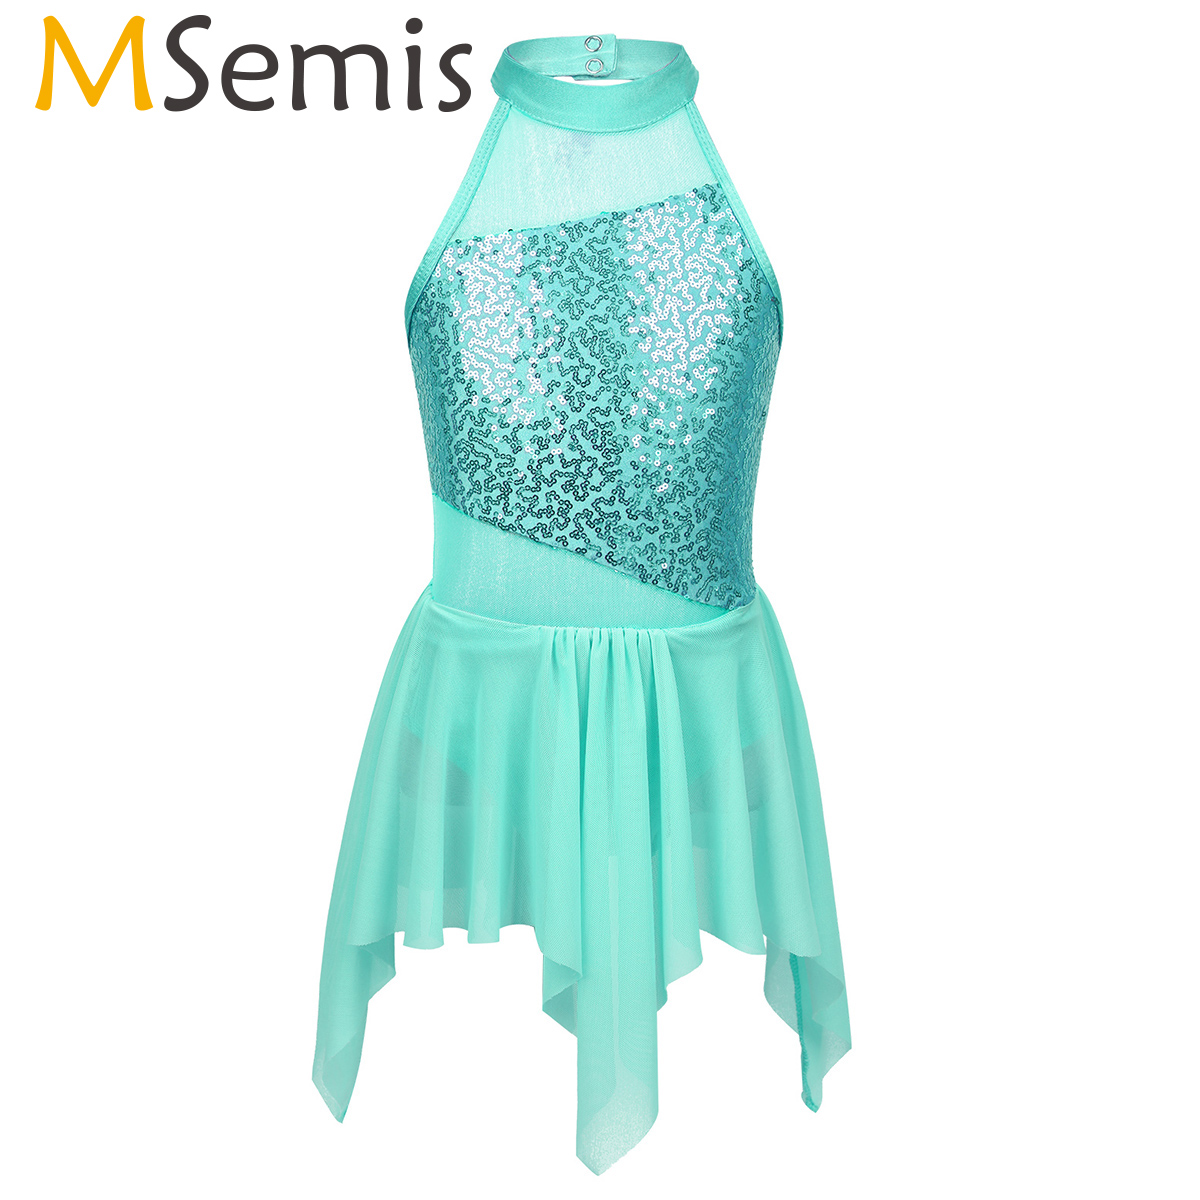 MSemis Figure Ice Skating Dress Kids Girls Sequins Dance Costumes Irregular Cutout Back Ballroom Dance Wear Competition Dresses